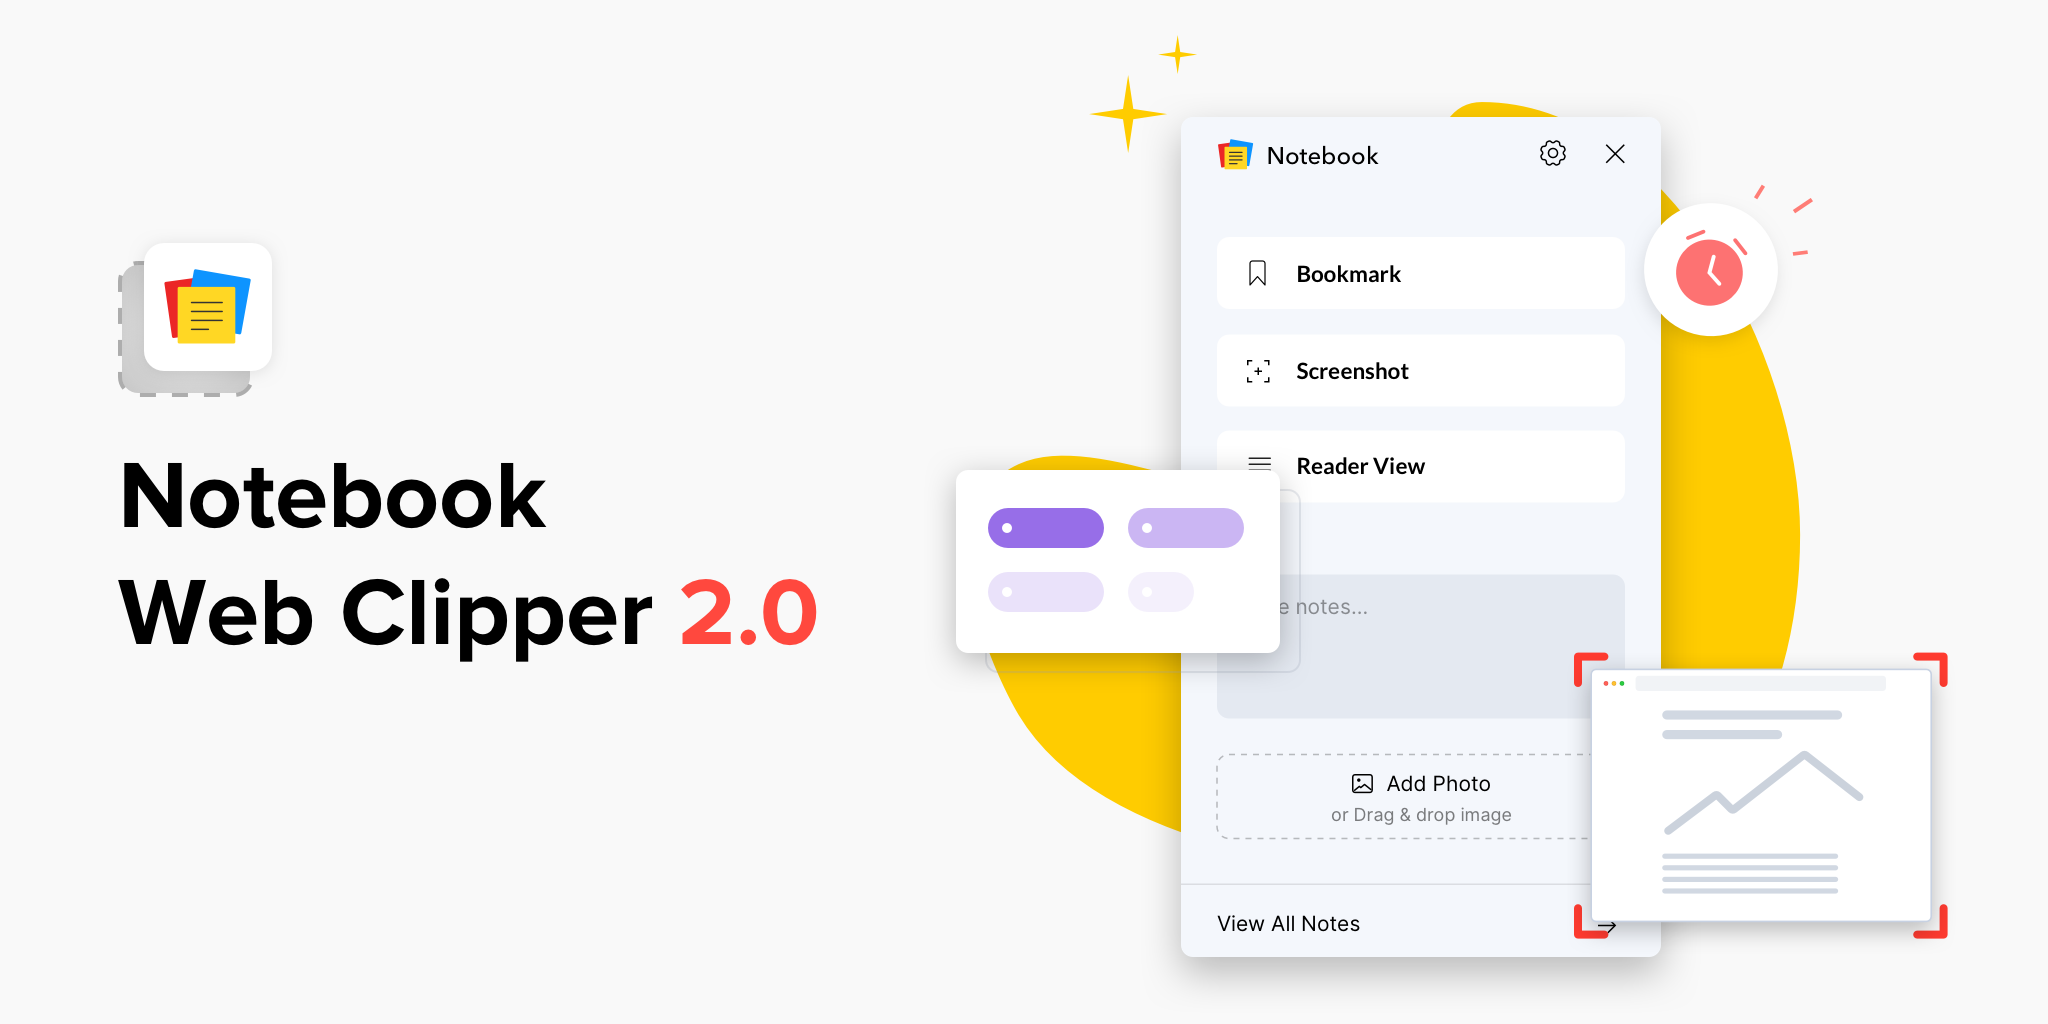 What's new in Notebook Web Clipper